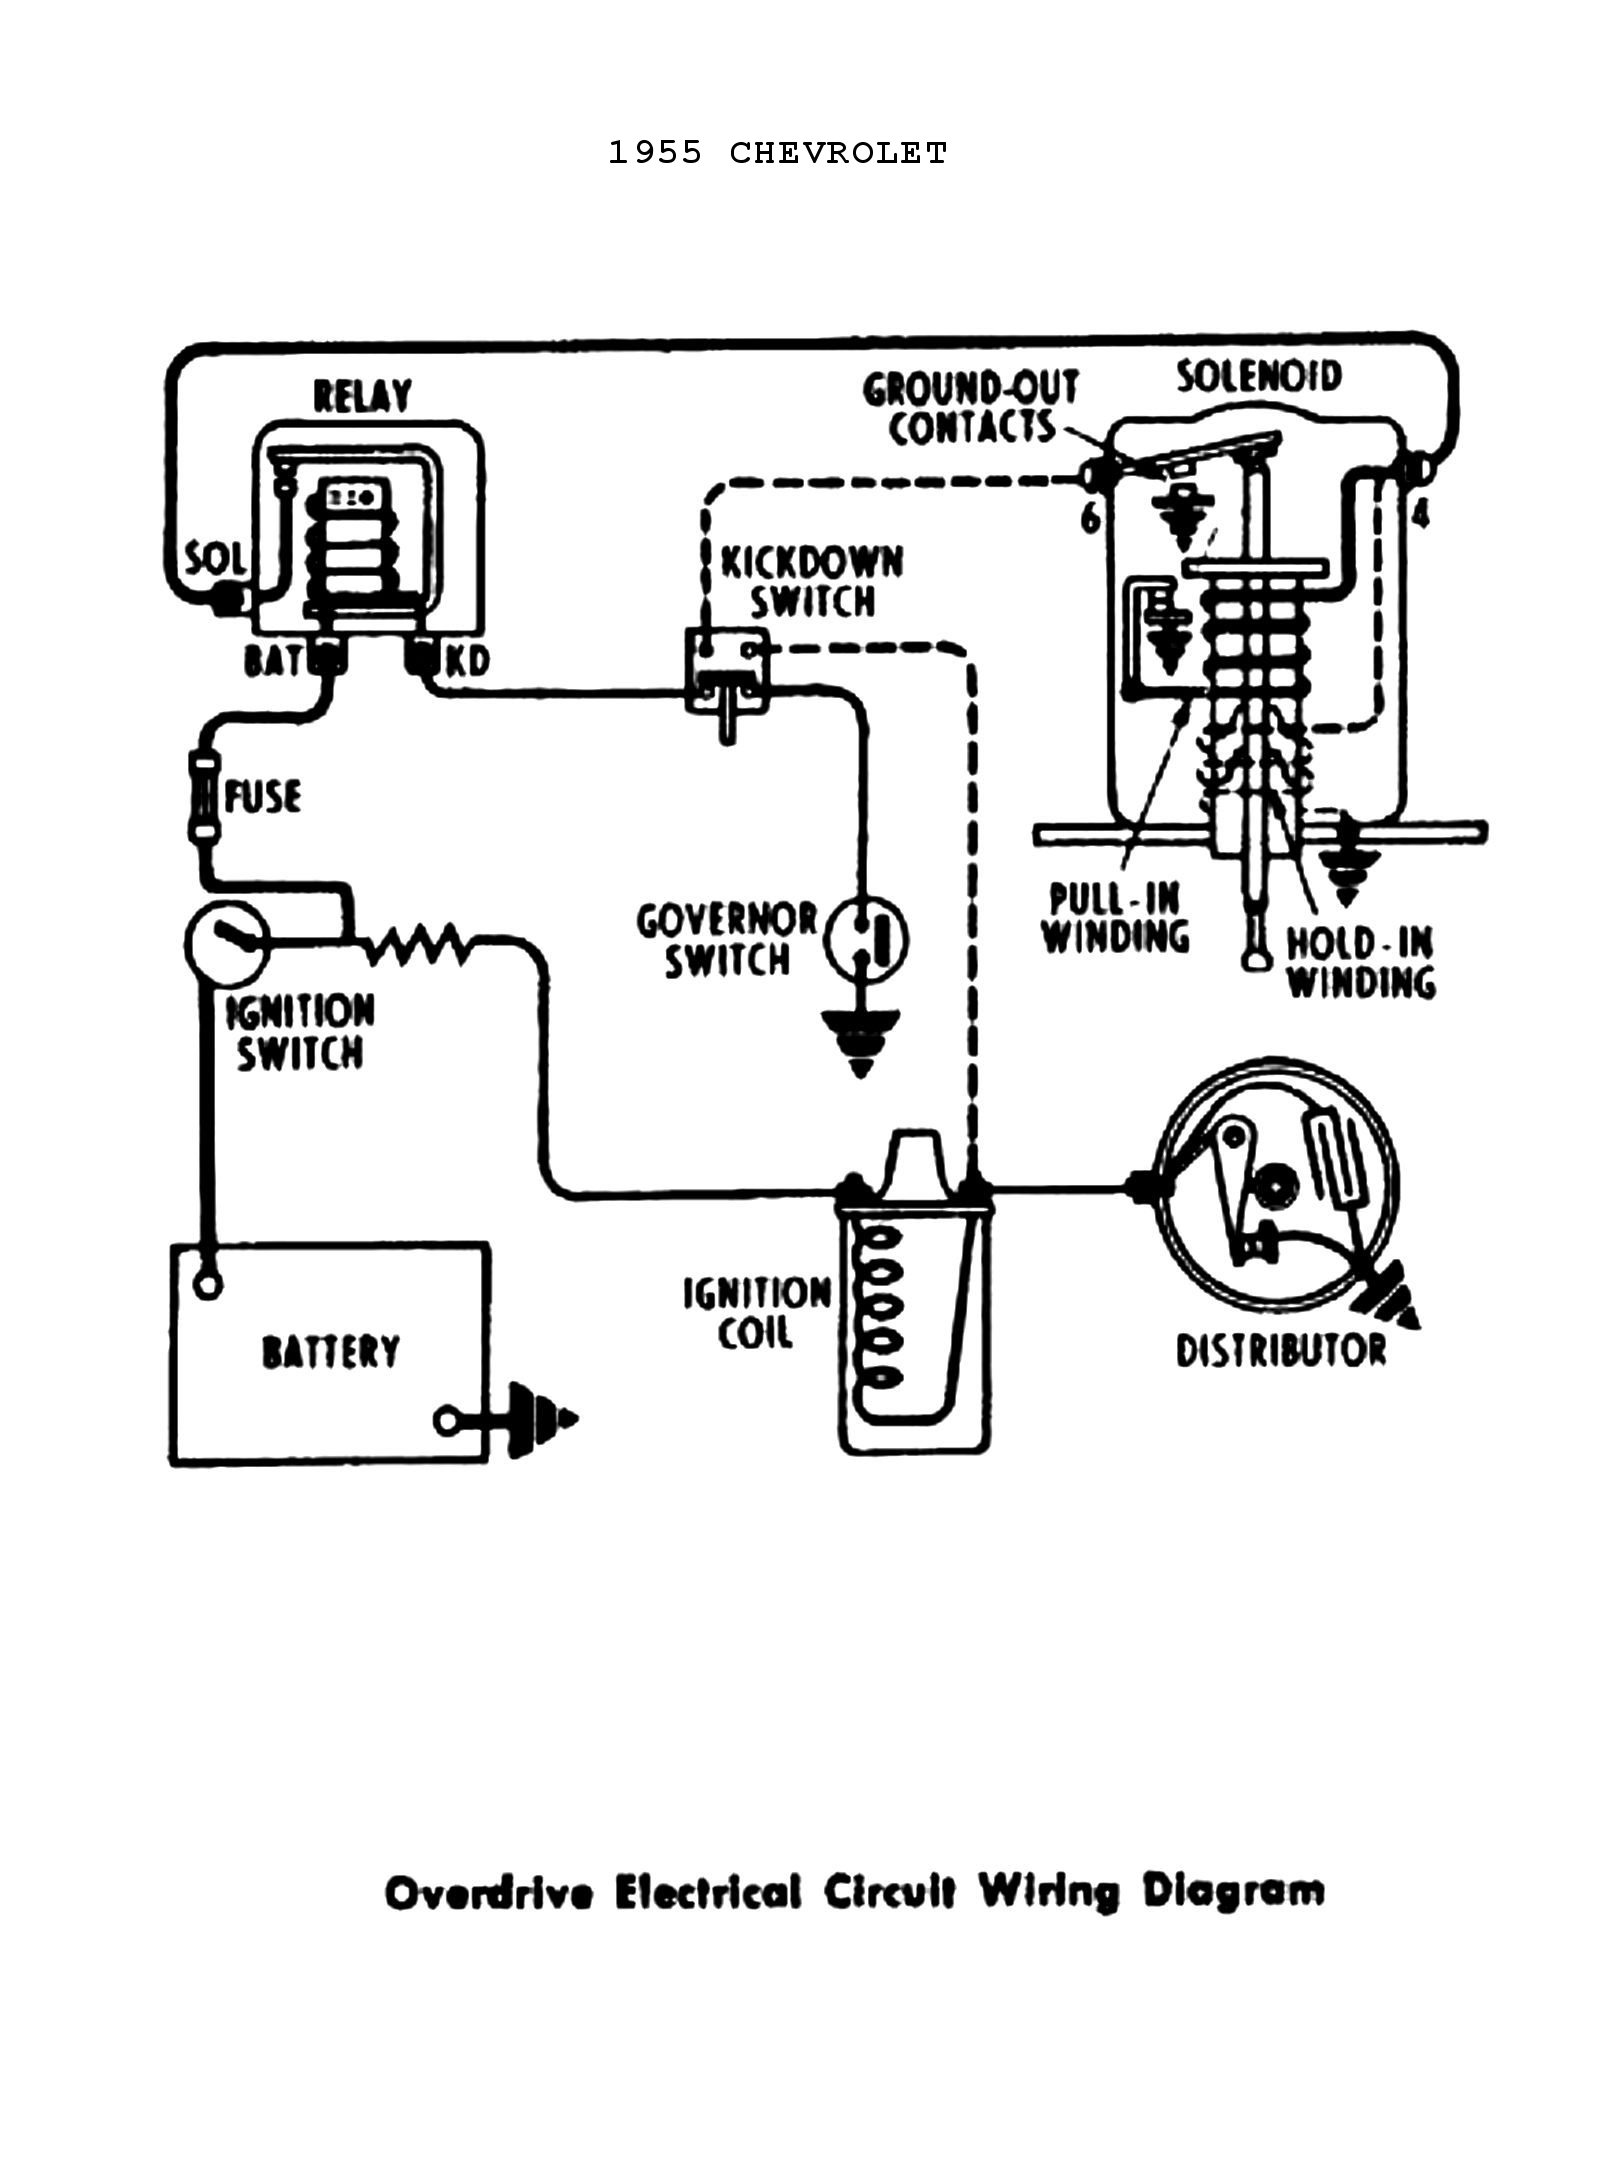 chevy wiring diagrams Car Headlight Diagram 1955 power windows \u0026 seats � 1955 overdrive circuit